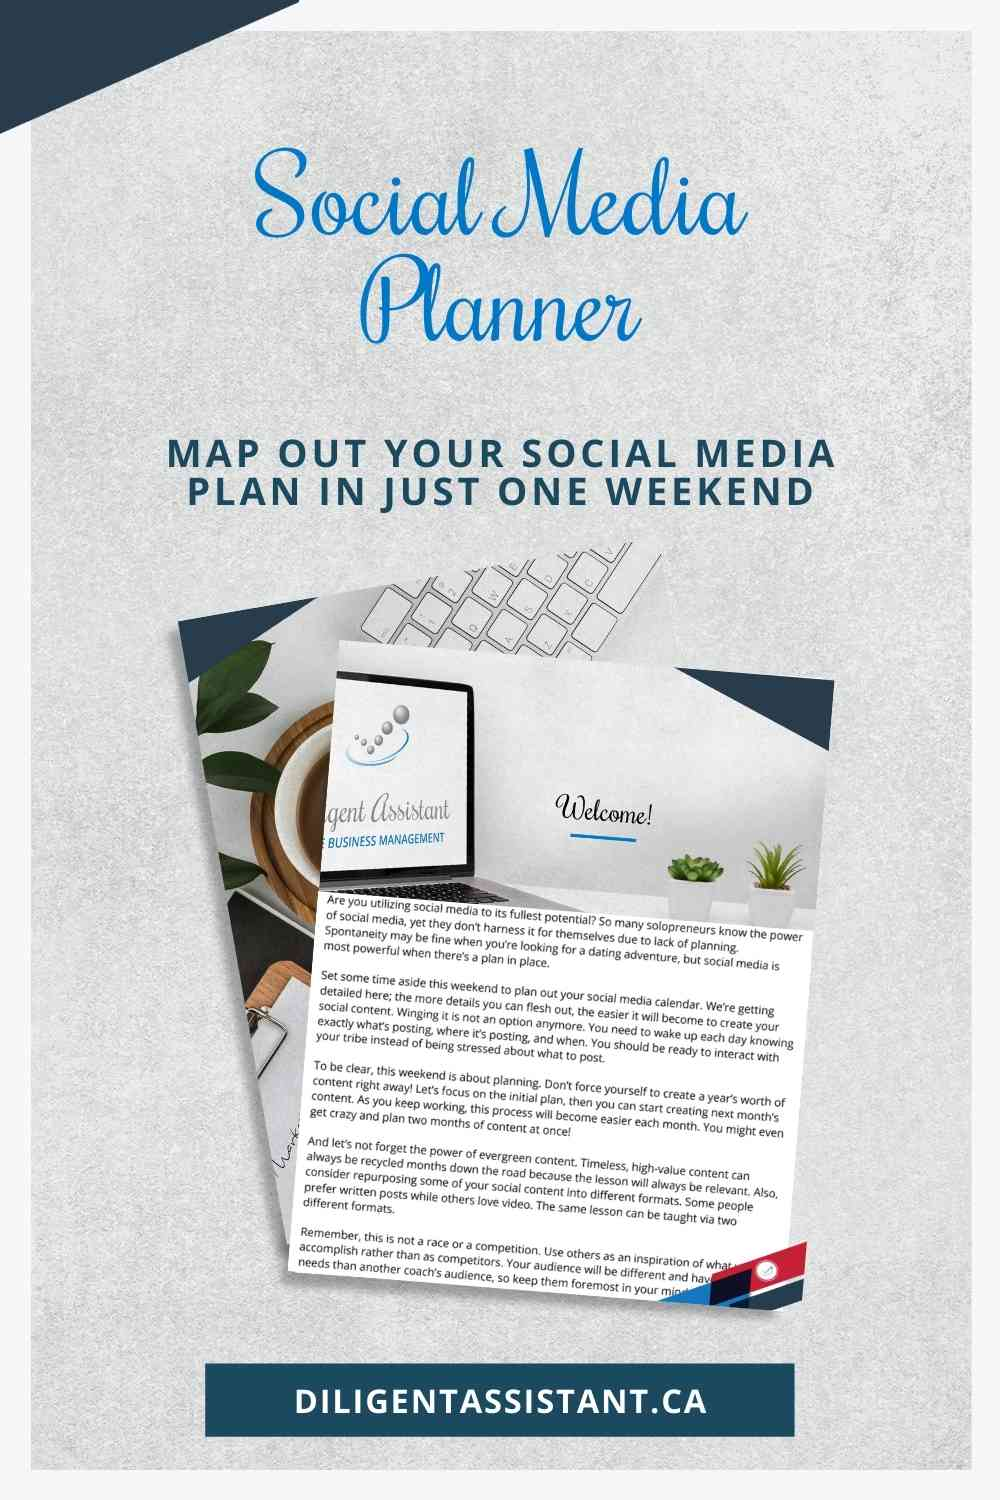 Map out your social media posting plan